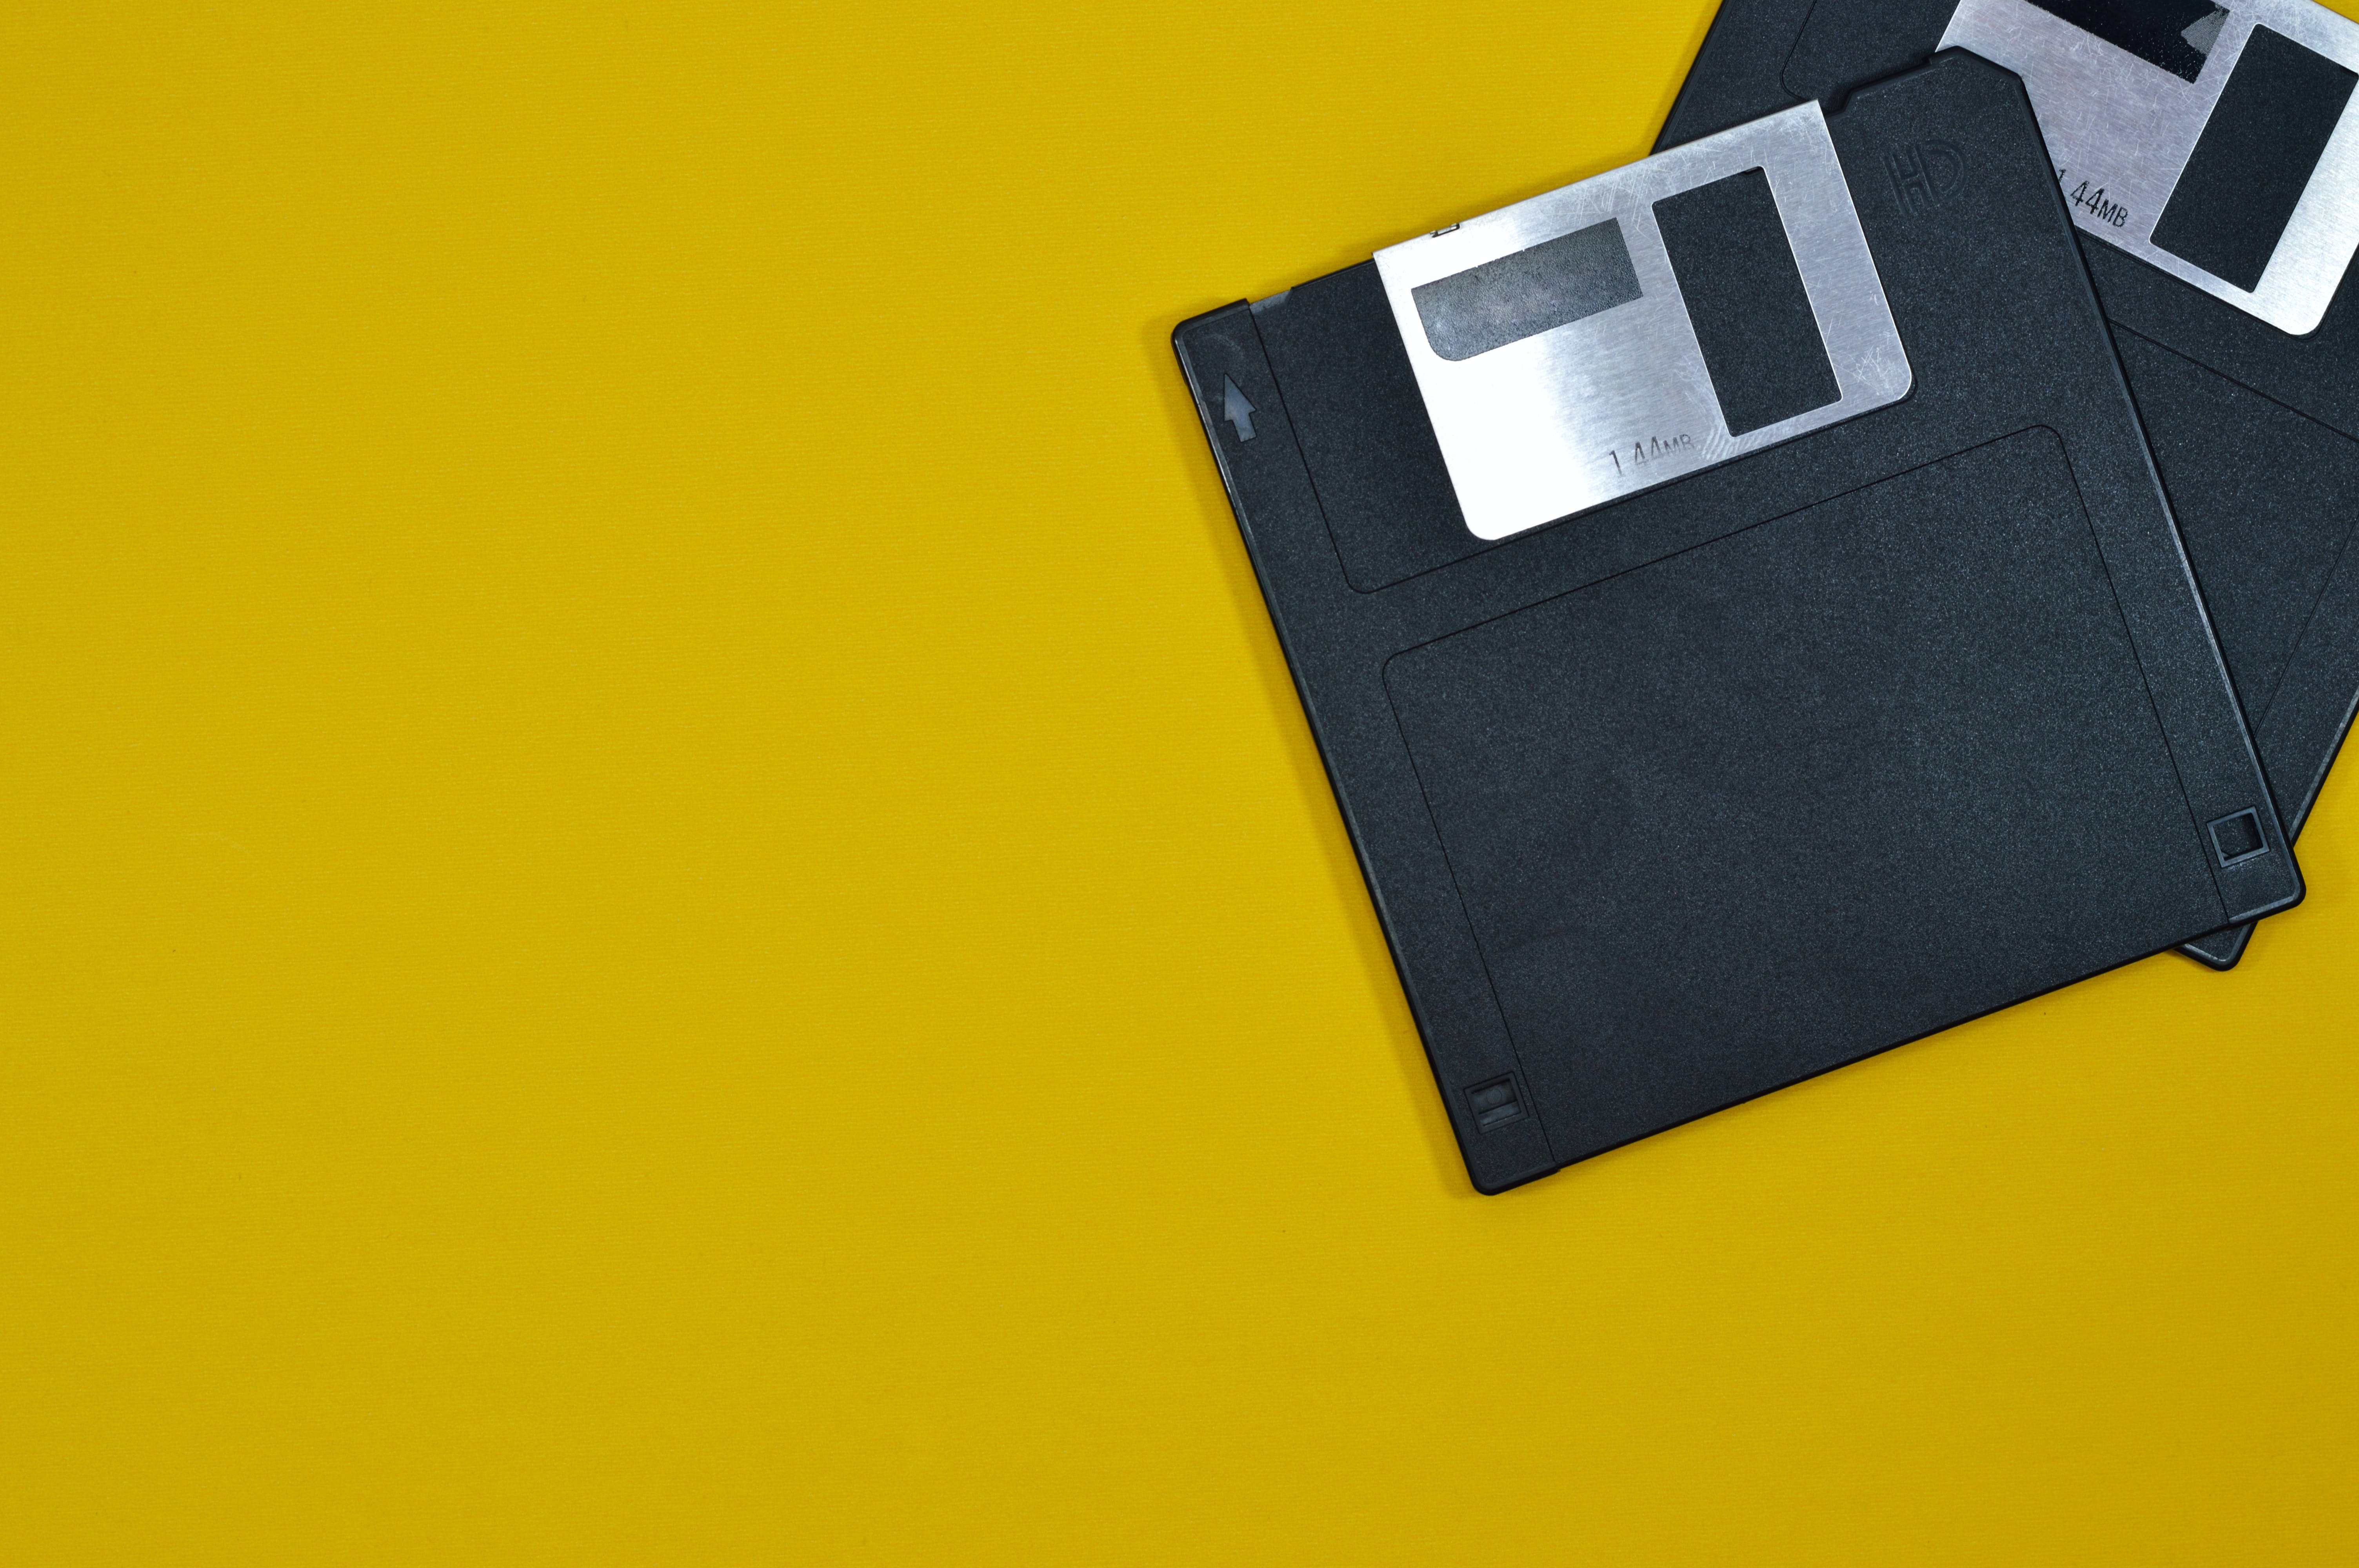 Free stock photo of office, vintage, technology, computer